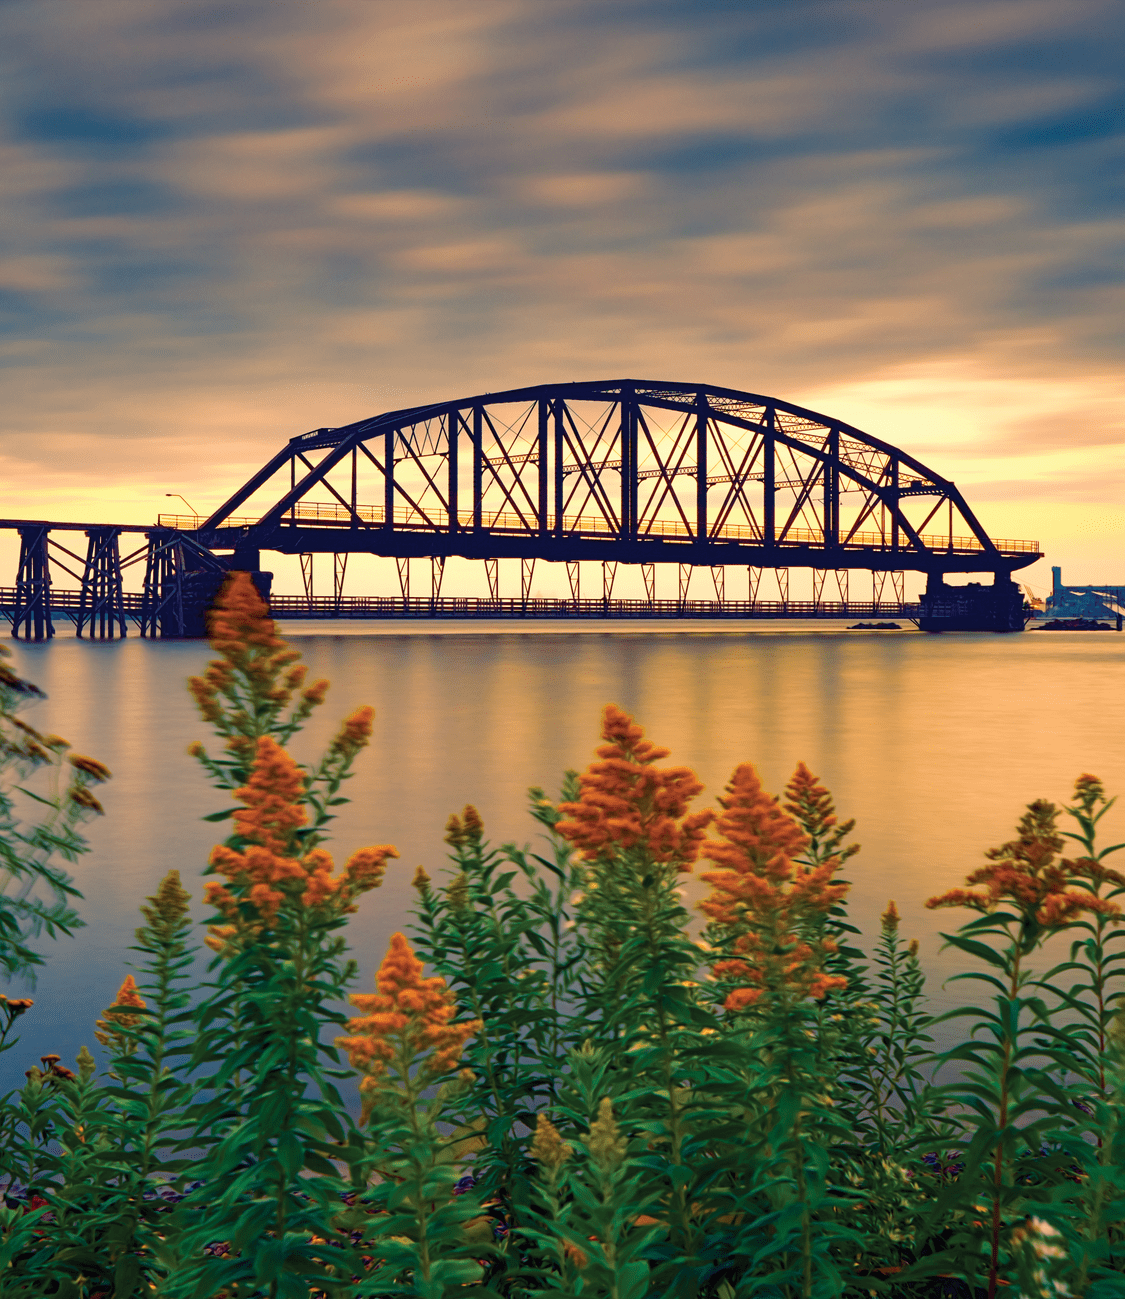 The historic Aerial Lift Bridge in Canal Park